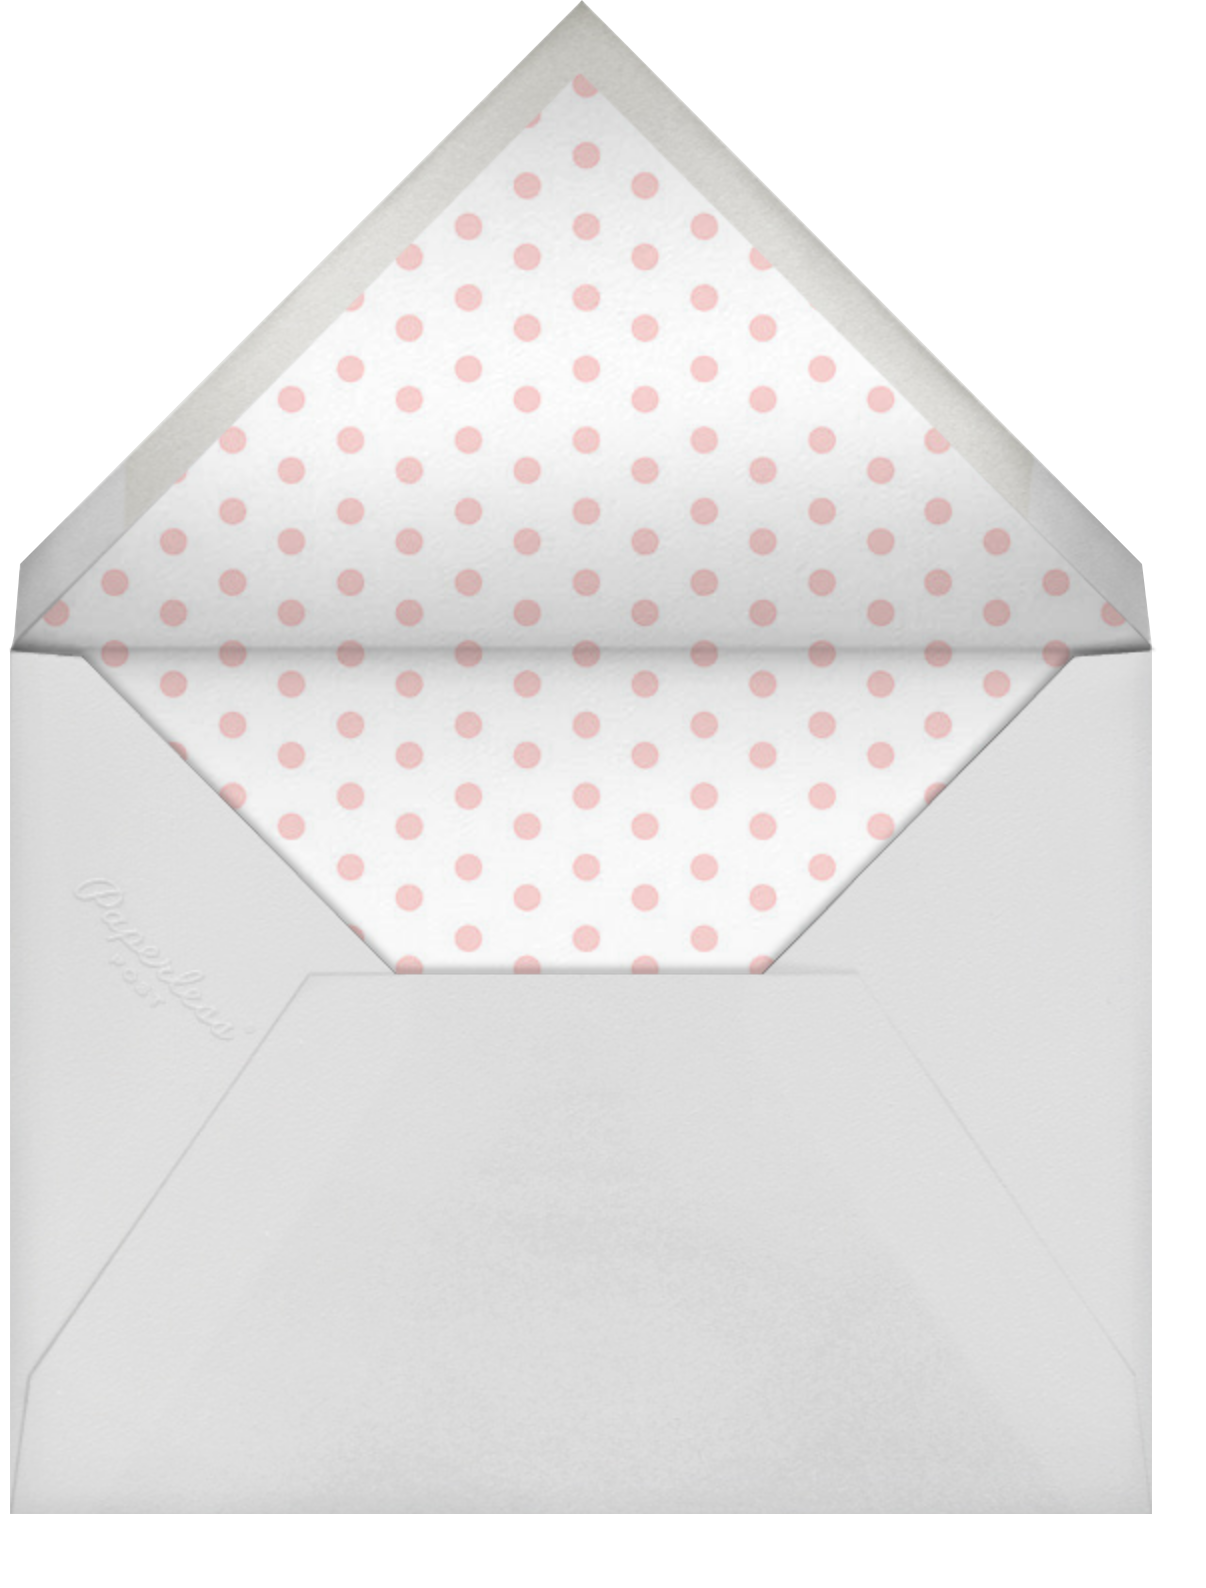 Rosy Mother's Day - Rifle Paper Co. - Envelope